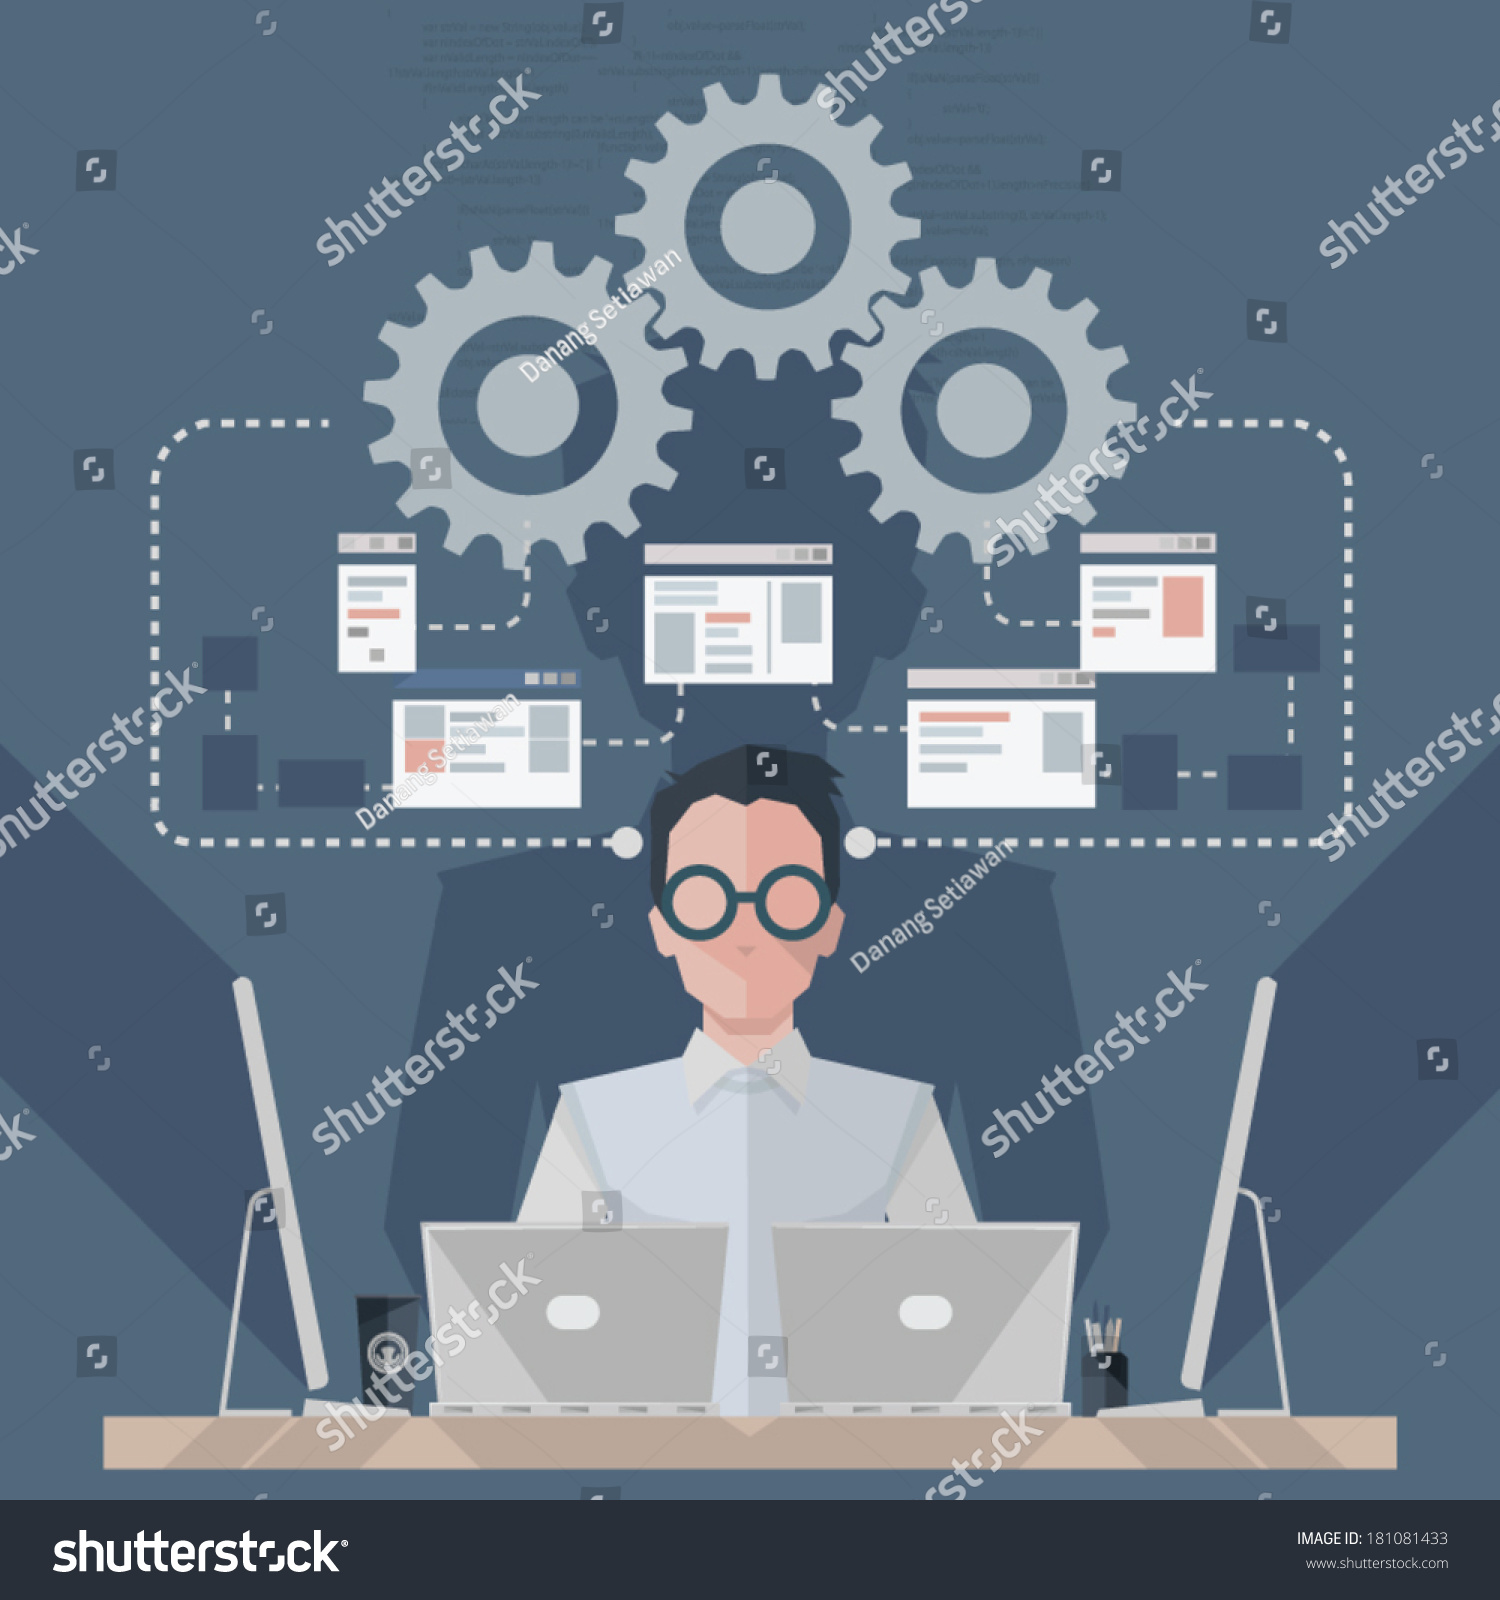 Software engineer stock vector 181081433 shutterstock Vector image software